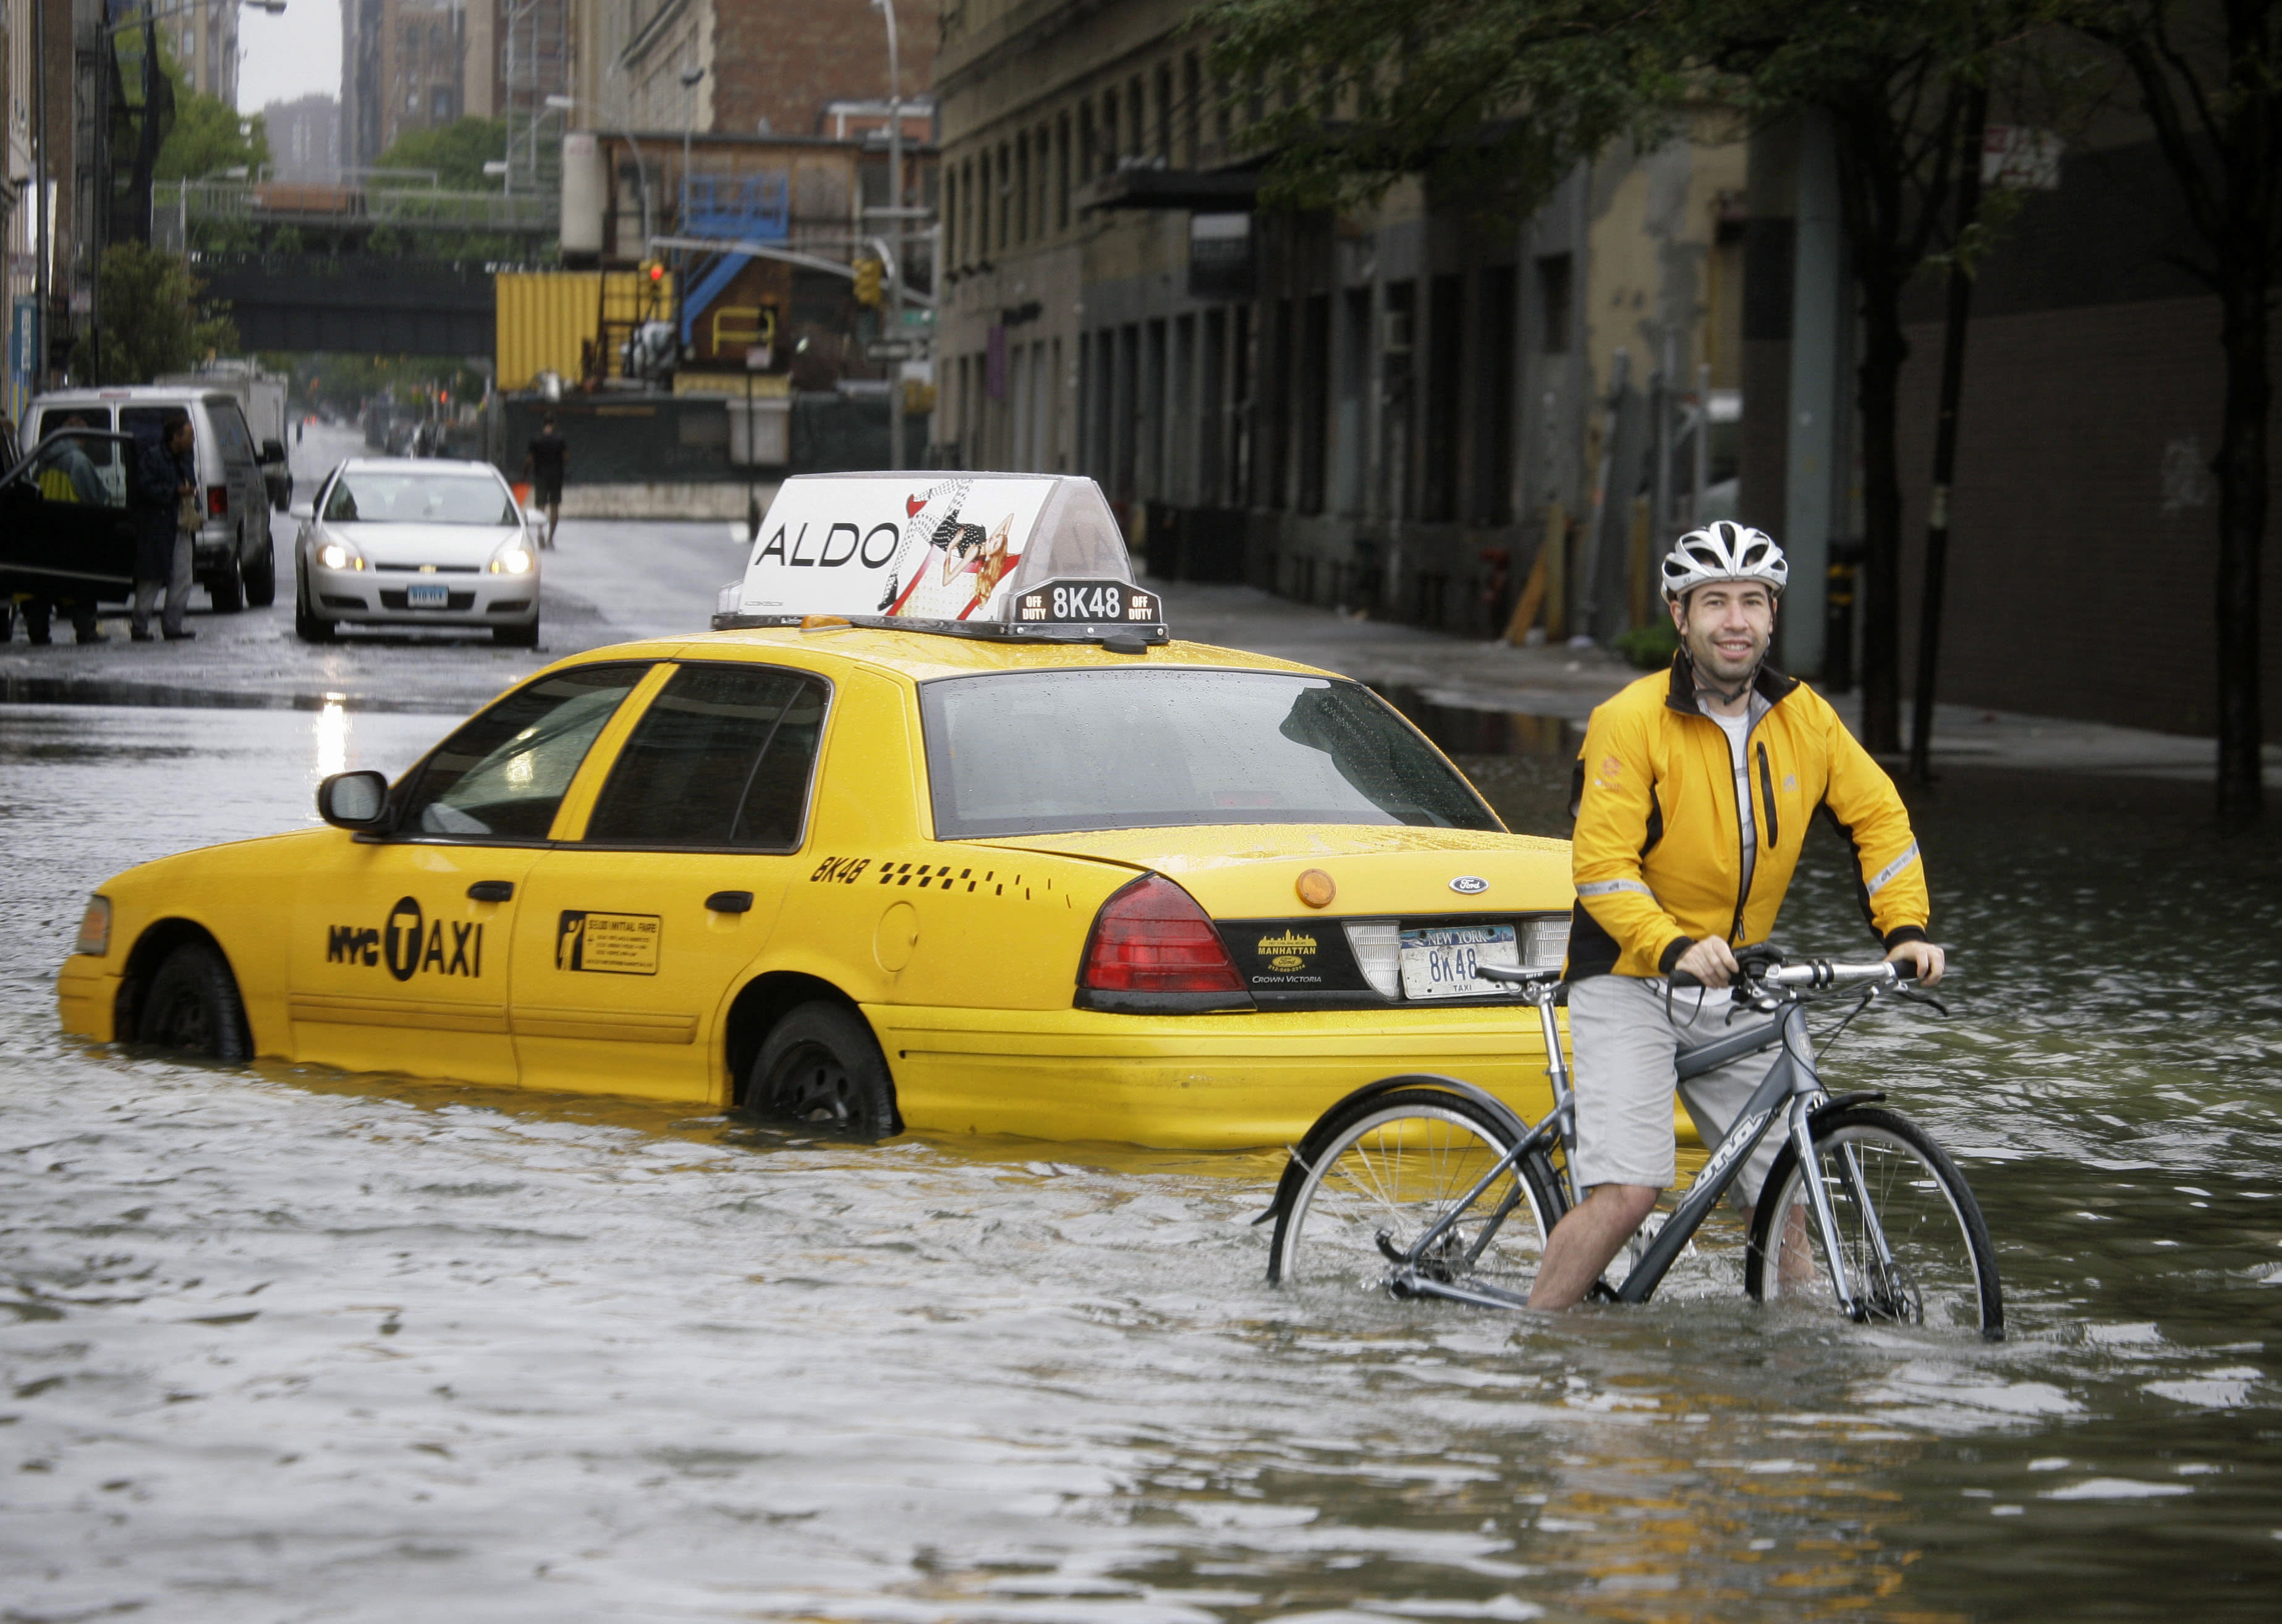 "FILE - In this Aug. 28, 2011 file photo, a bicyclist makes his way past a stranded taxi on a flooded New York City street as Tropical Storm Irene passes through the city. From Cape Hatteras, N.C., to just north of Boston, sea levels are rising much faster than they are around the globe, putting one of the world's most costly coasts in danger of flooding, according to a new study published Sunday, June 24, 2012, in the journal Nature Climate Change. By the year 2100, scientists and computer models estimate that sea levels globally could rise as much as 3.3 feet. The accelerated rate along the East Coast could add about another 8 to 11 inches, Asbury Sallenger Jr., an oceanographer for the USGS said. ""Where that kind of thing becomes important is during a storm,"" Sallenger said. That's when it can damage buildings and erode coastlines. (AP Photo/Peter Morgan, File)"